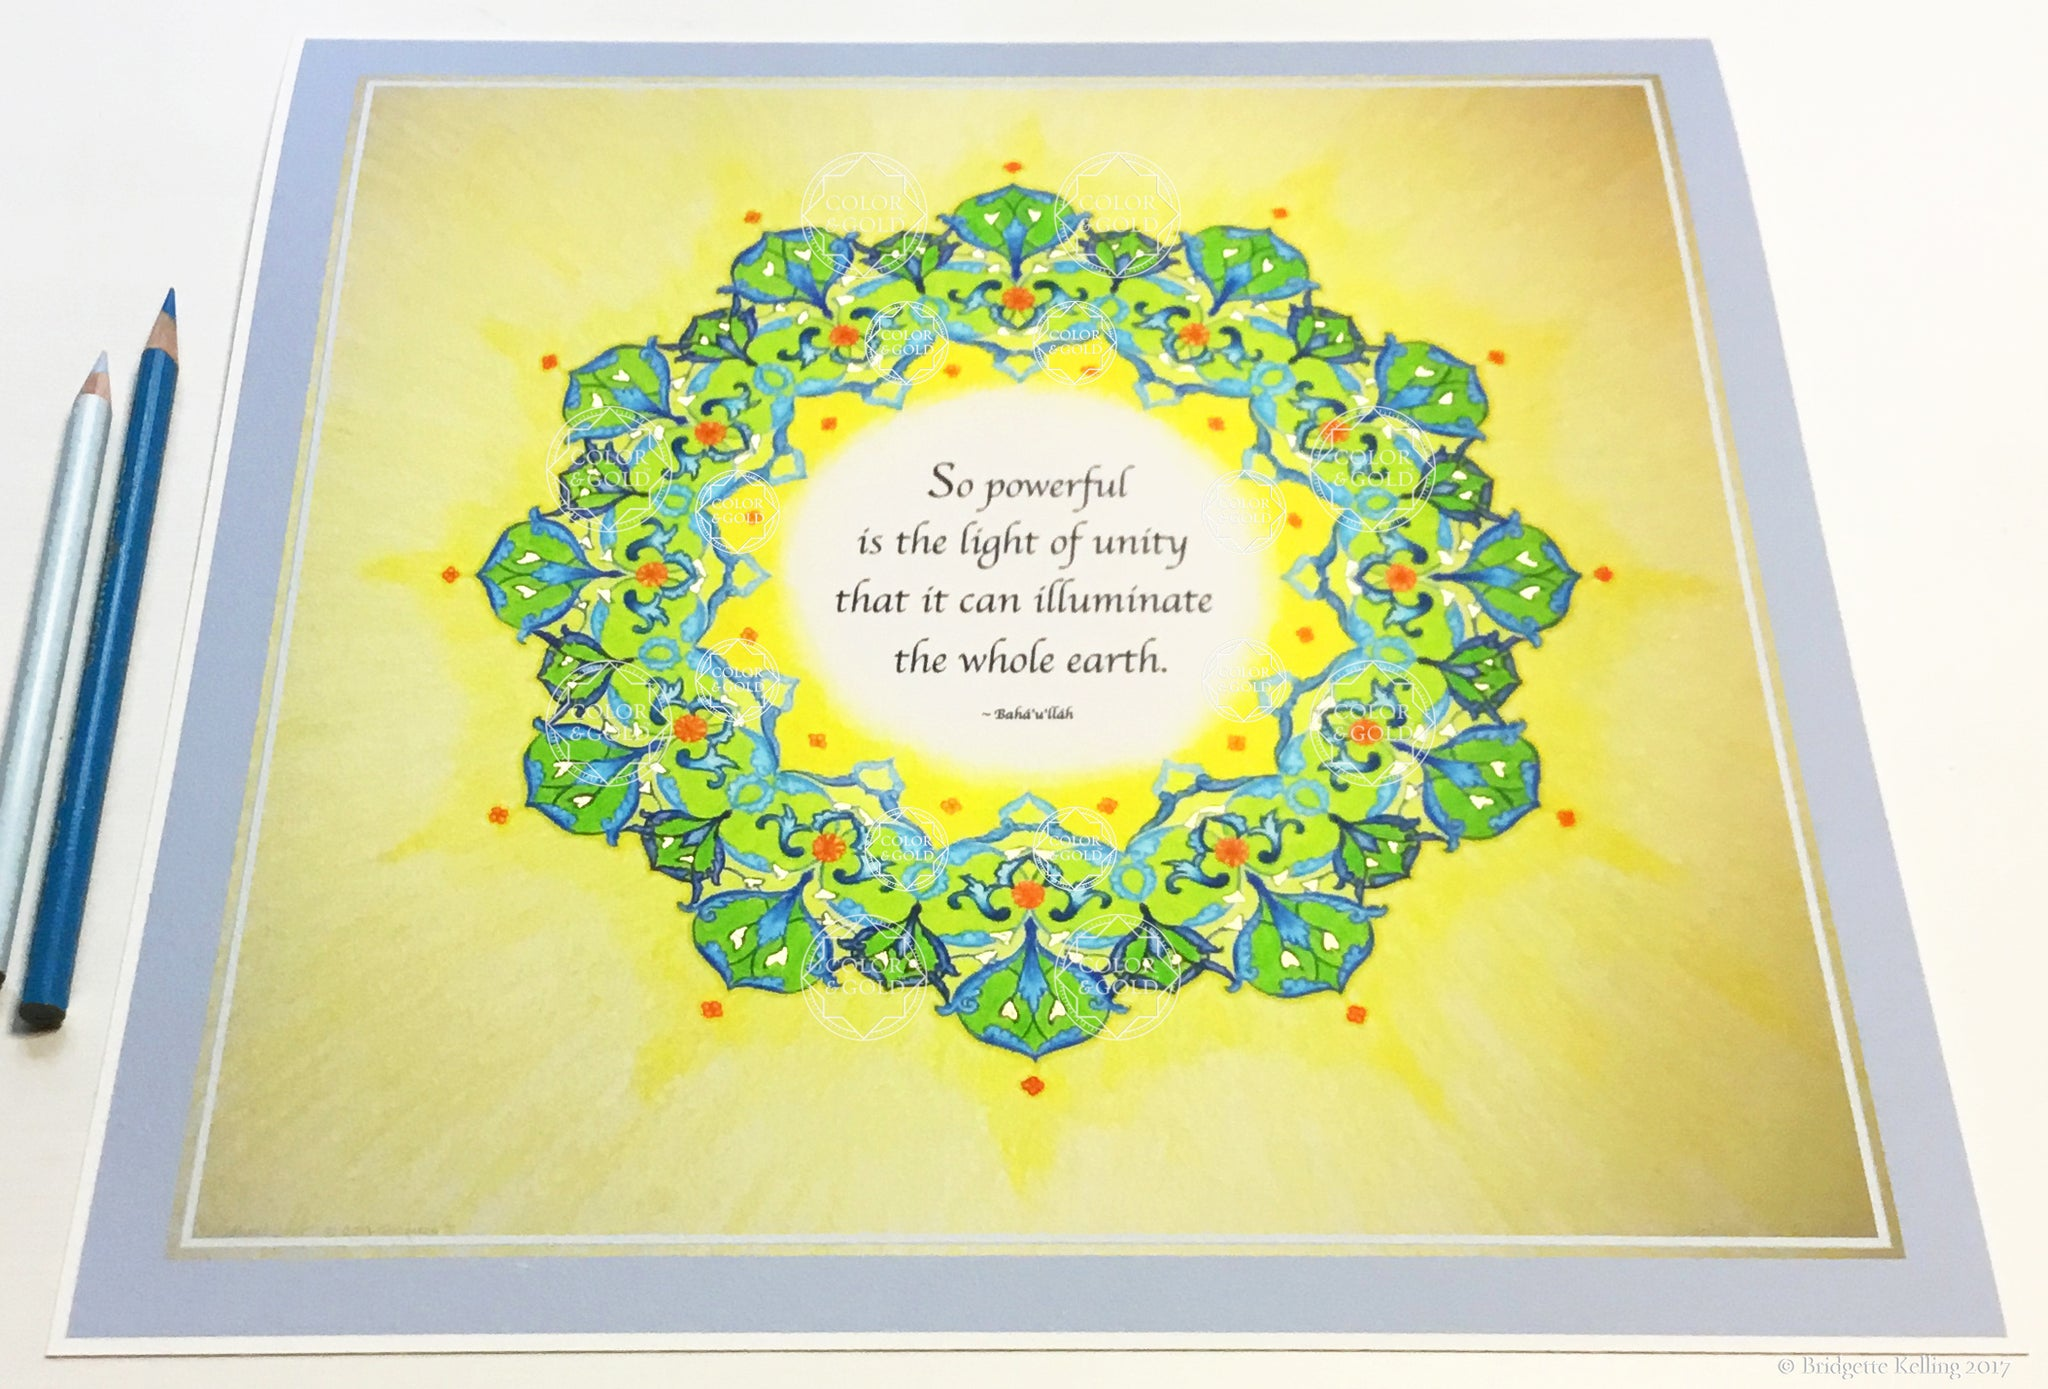 "Green, yellow & 24 kt gold gilded mandala with a Bahá'í quotation on unity 8"" x 8"" - Color & Gold LLC © Bridgette Kelling"